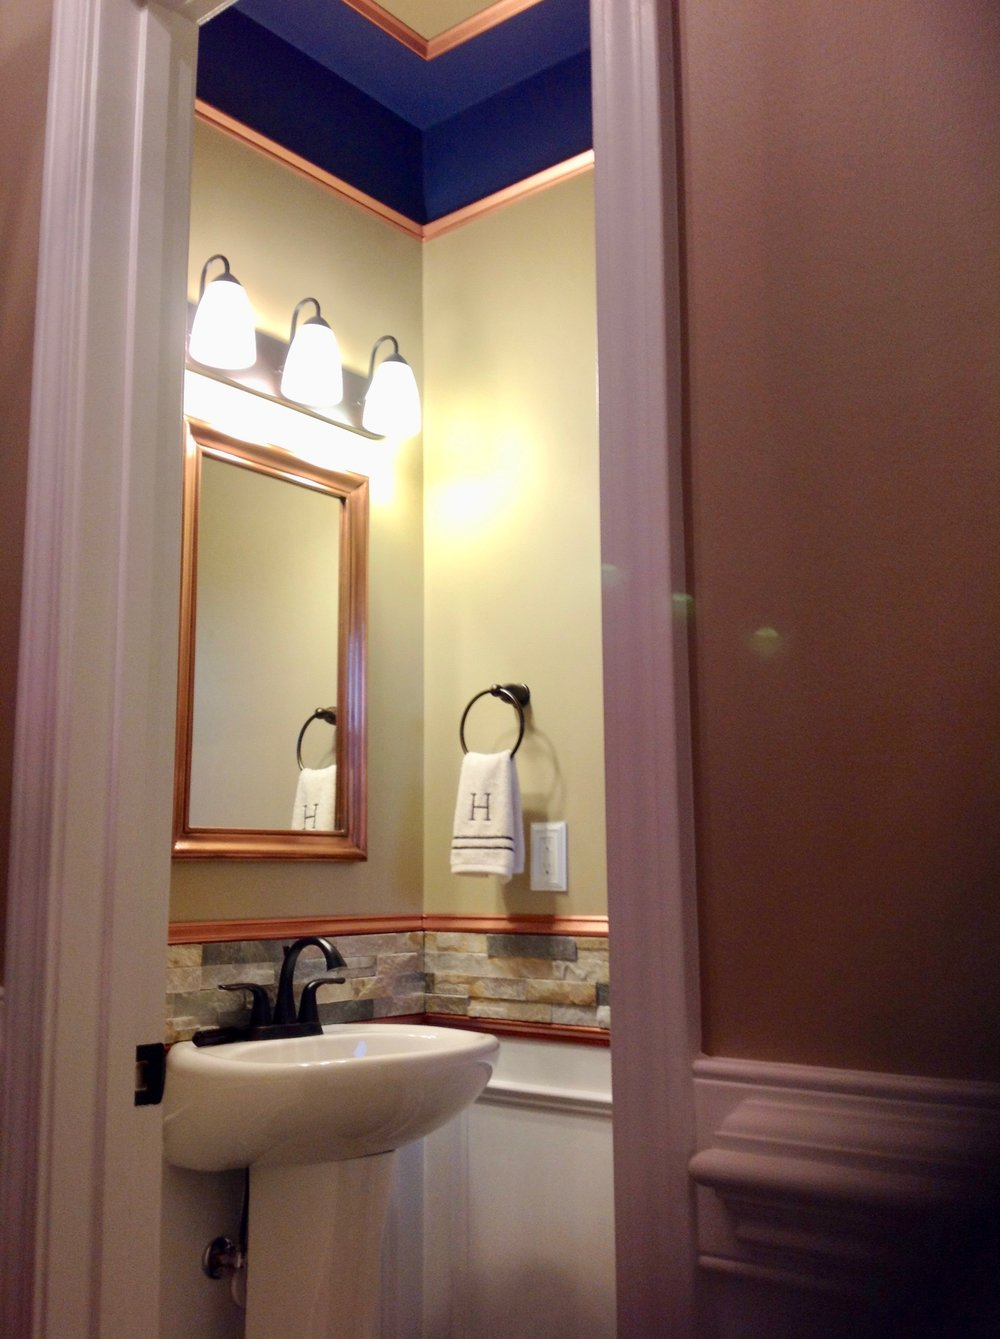 This Powder Room received attention from the floor to the ceiling. Stone tiles! Copper trim! Splashes of color!